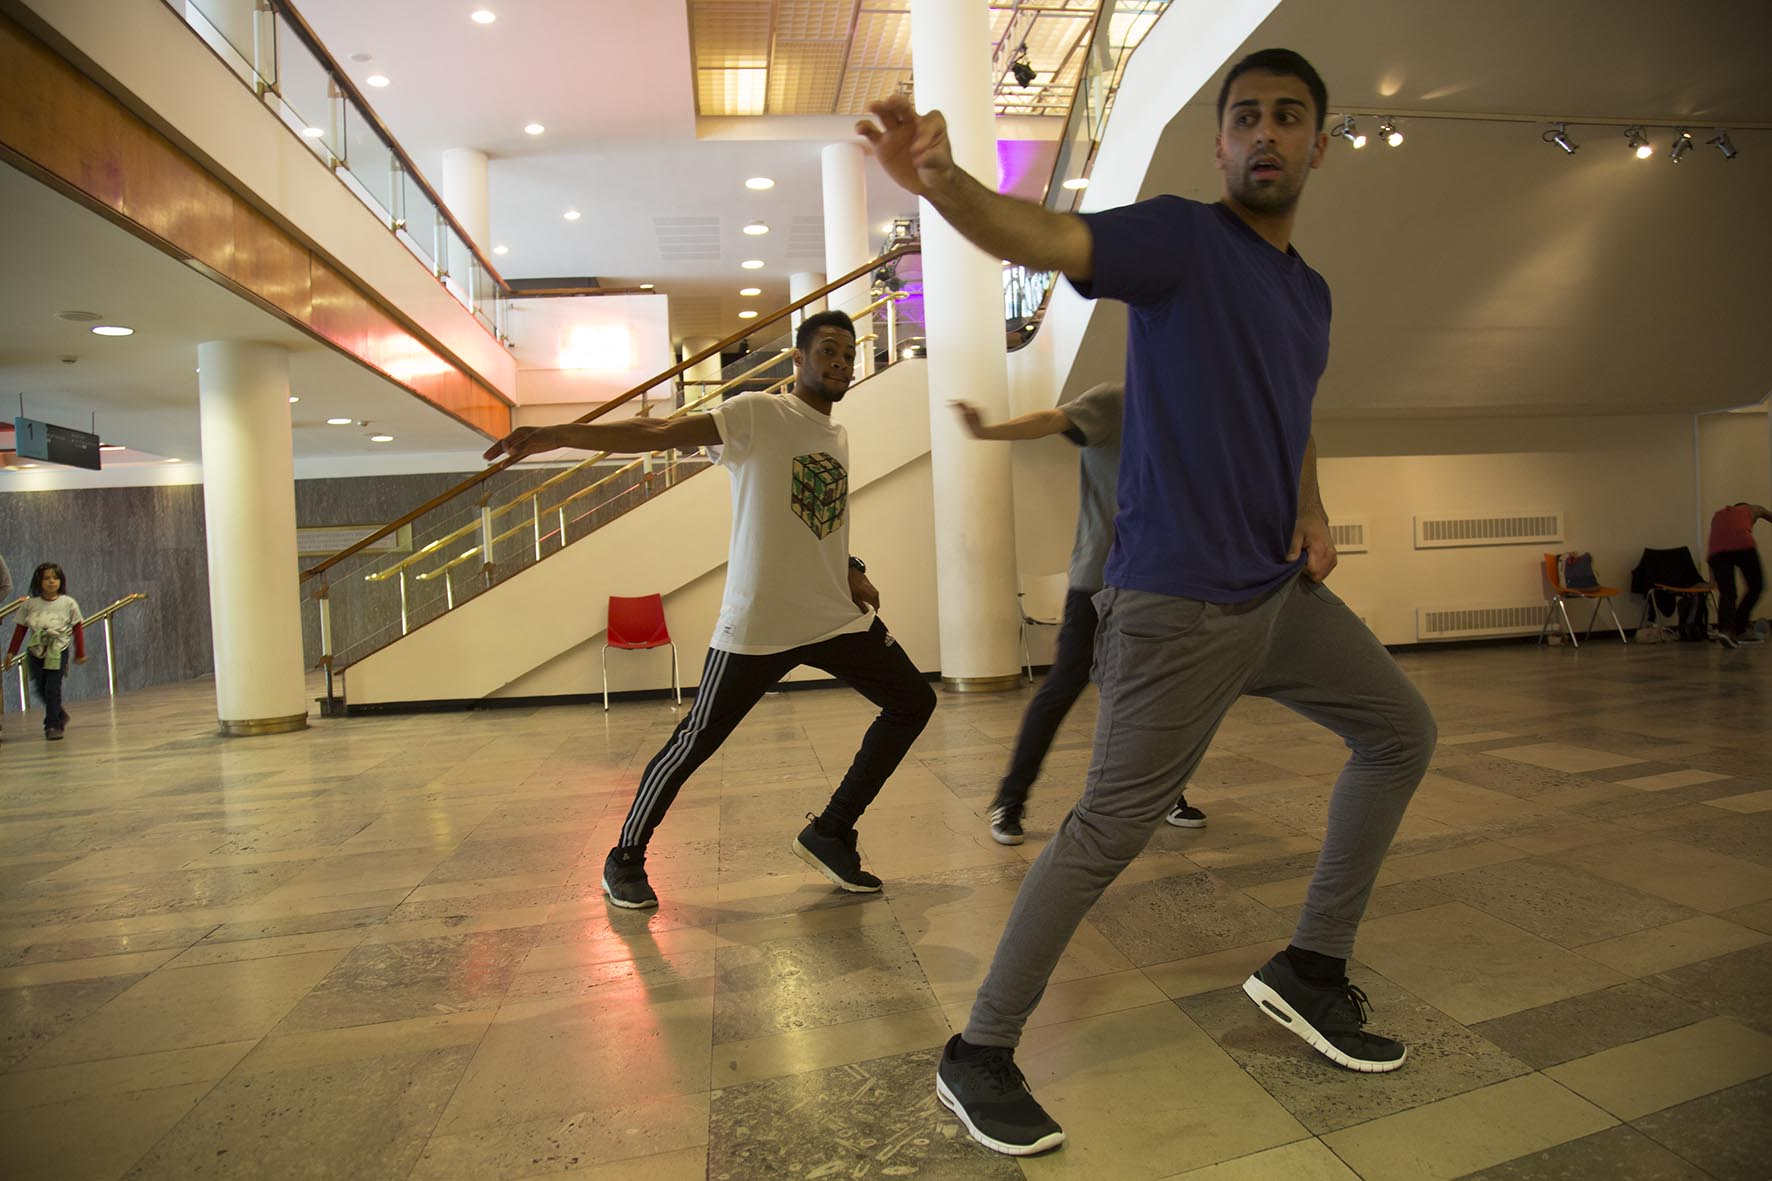 Street dance crew BodyPolitic practise their routine downstairs in the Royal Festival Hall.